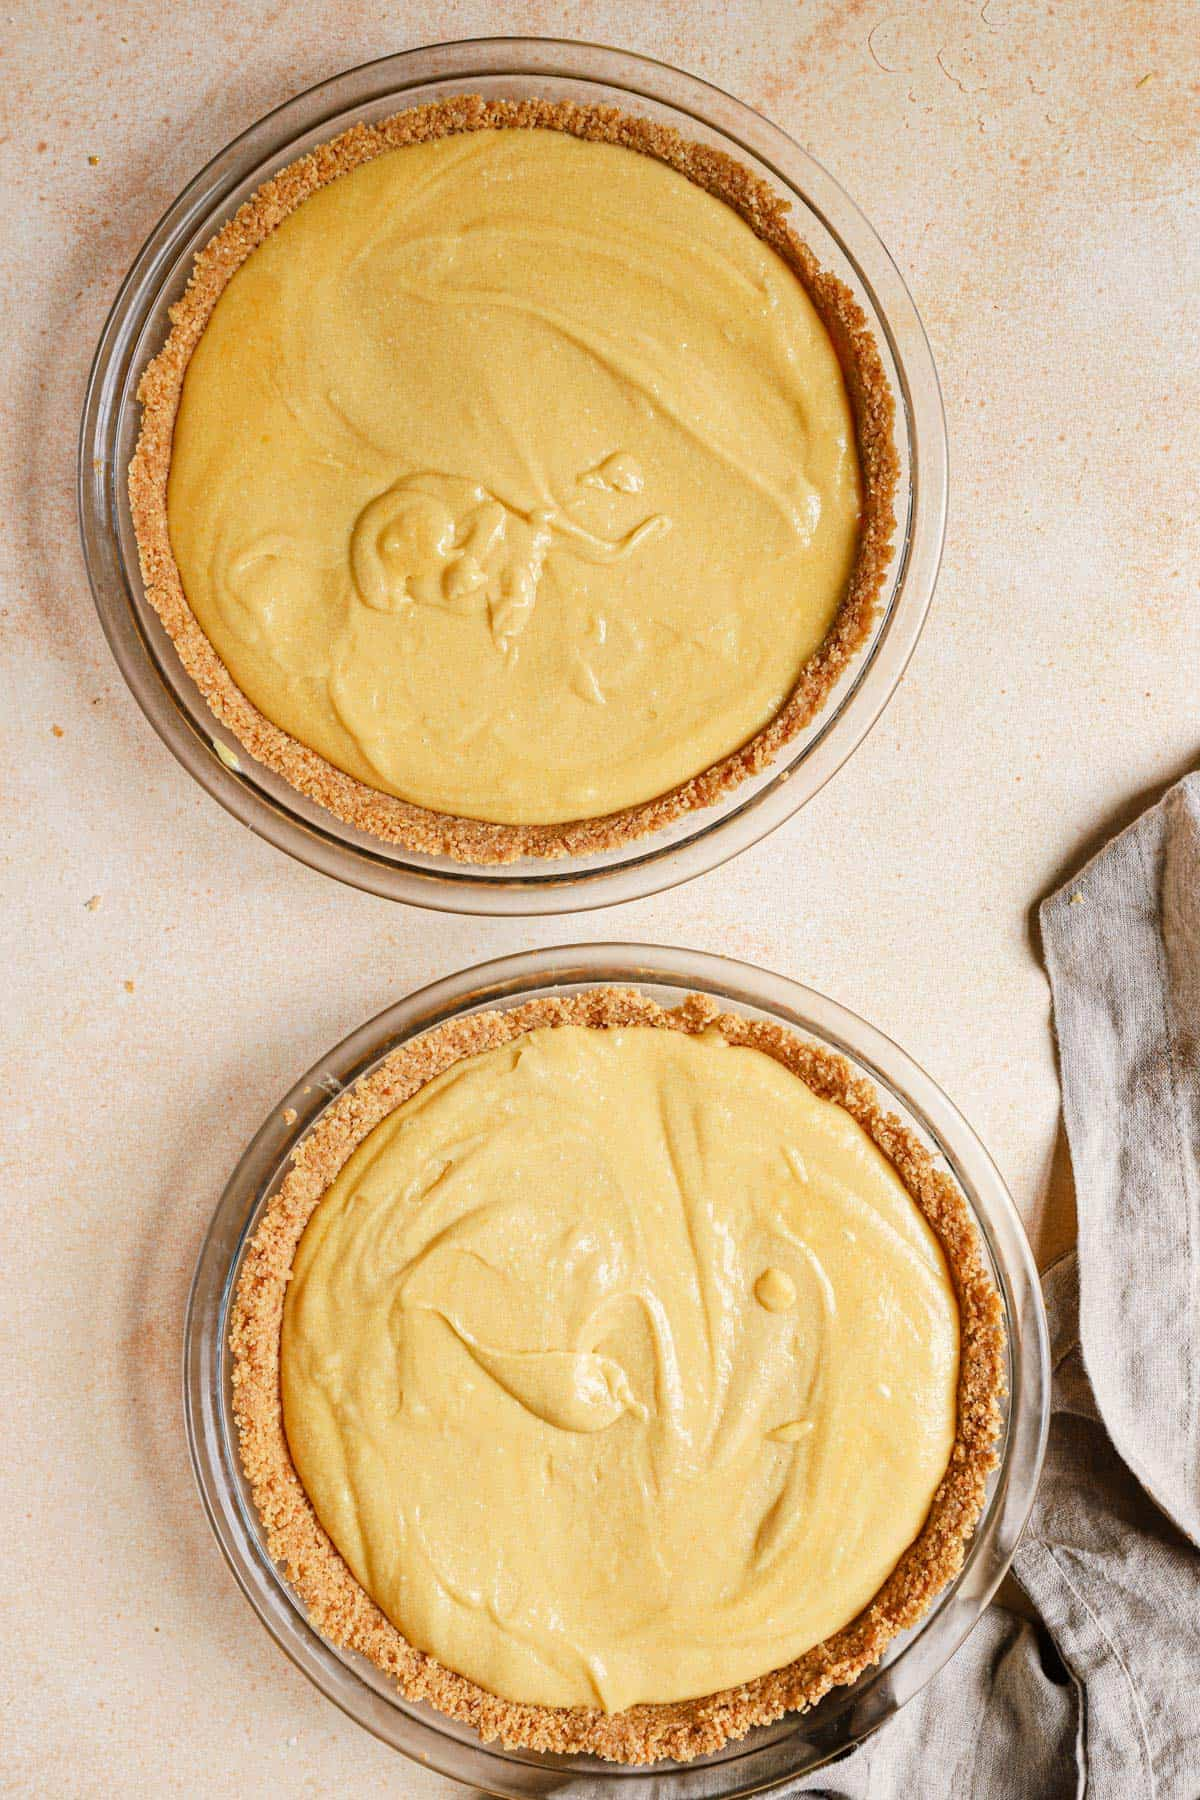 Two milk bar pies before baking on a peach colored counter with a dish towel to the bottom right.